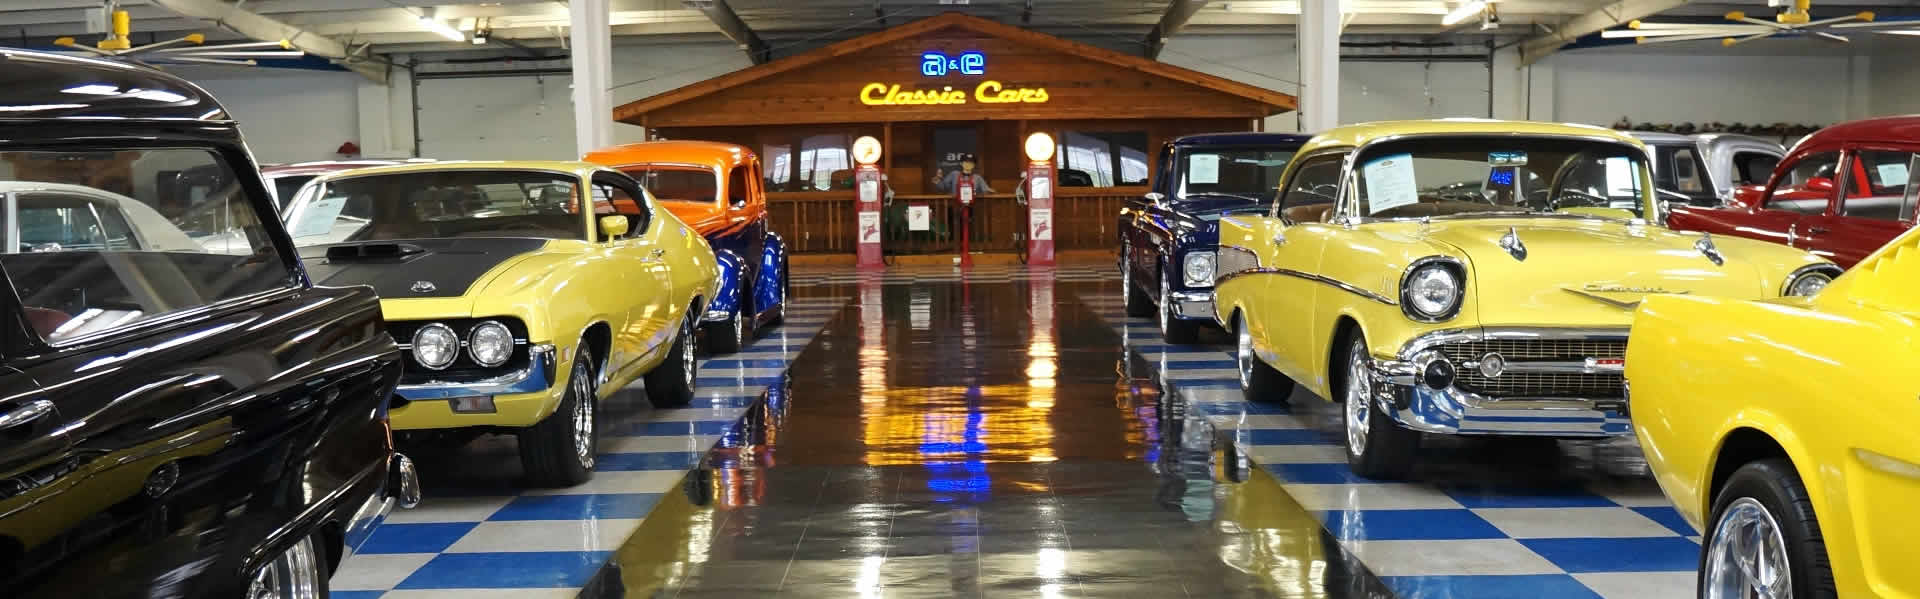 Texas Classic Cars For Sale